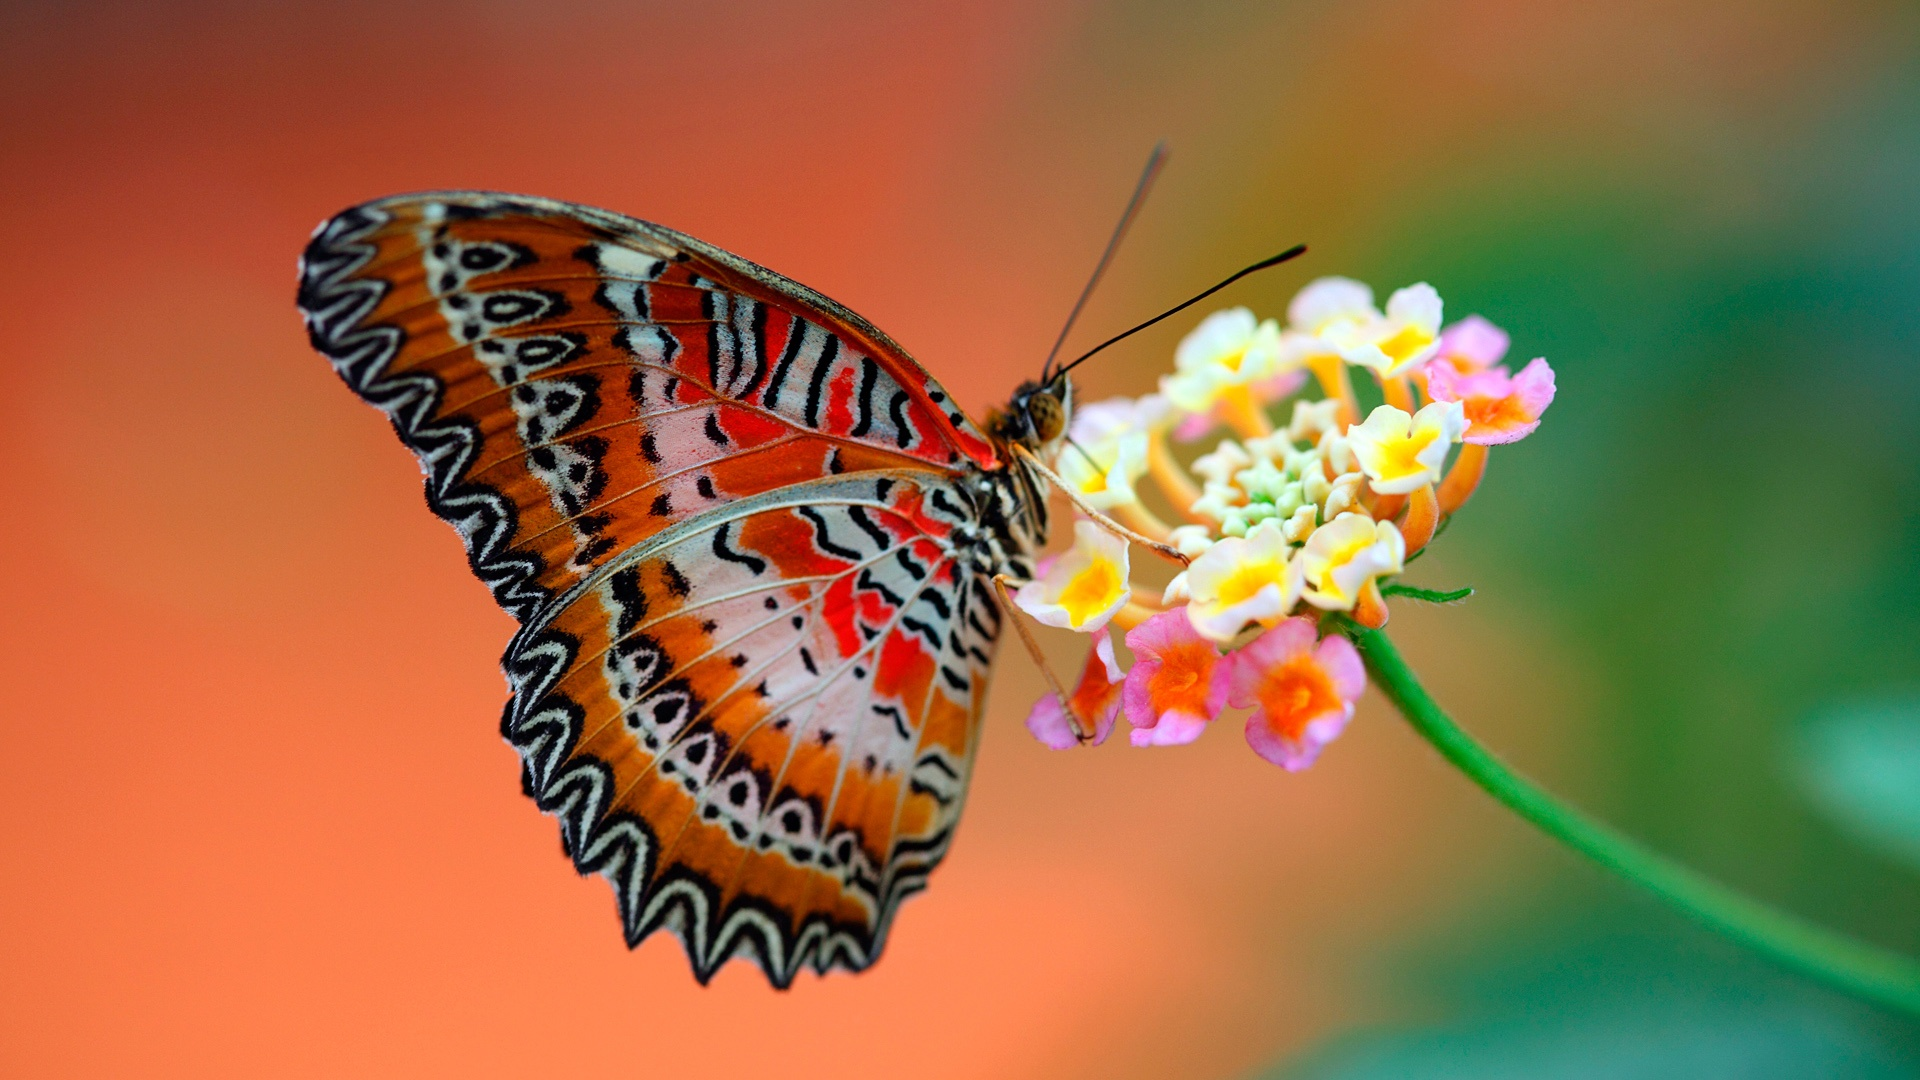 Cool butterfly hd wallpapers 1080p In Wallpapers Image 1920x1080